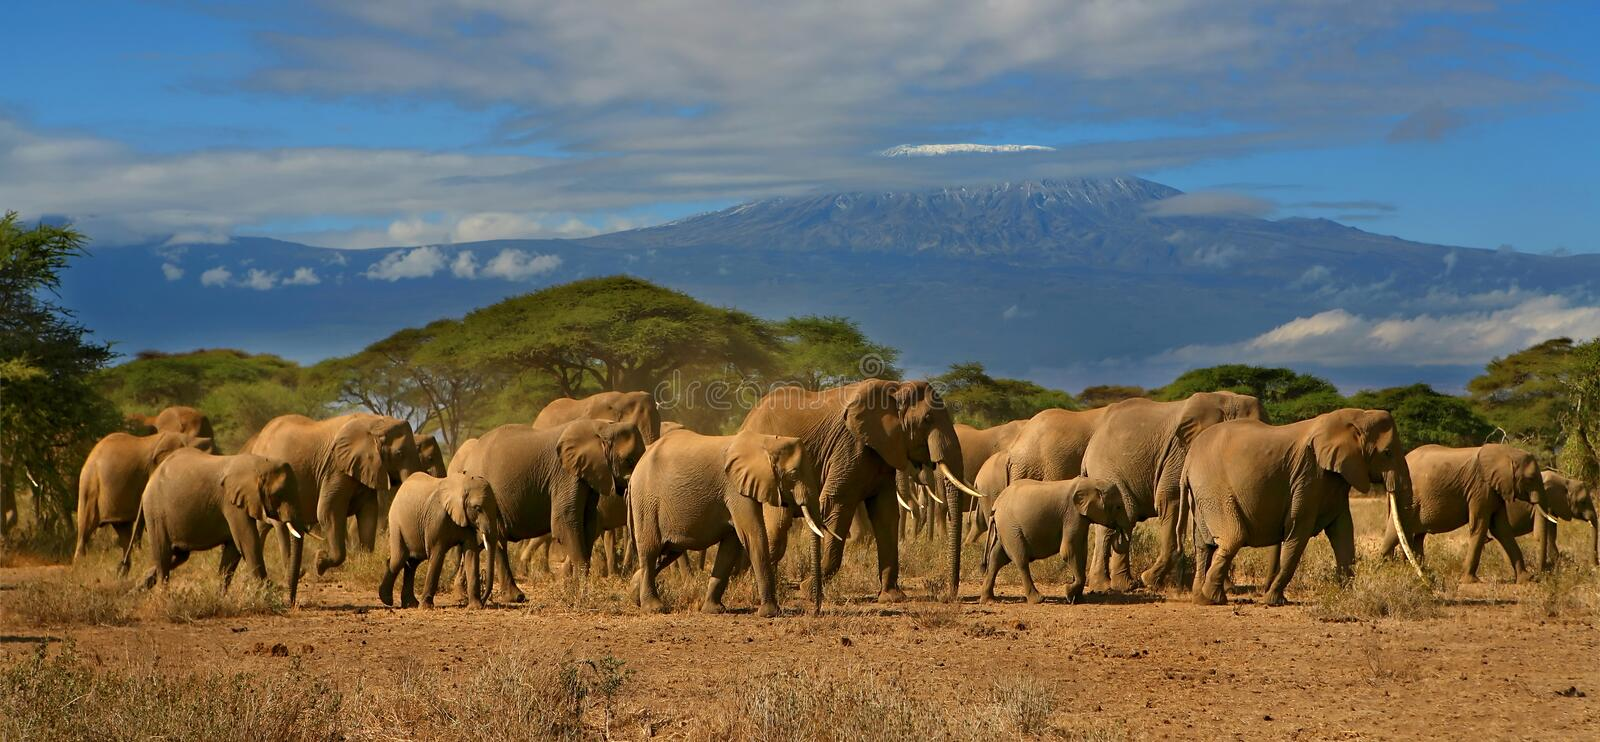 Kilimanjaro And Elephant Herd Africa Tanzania Kenya. Kilimanjaro mountain with a full herd of elephants in the foreground, with cloudy blue skies. Snowy mountain royalty free stock photography